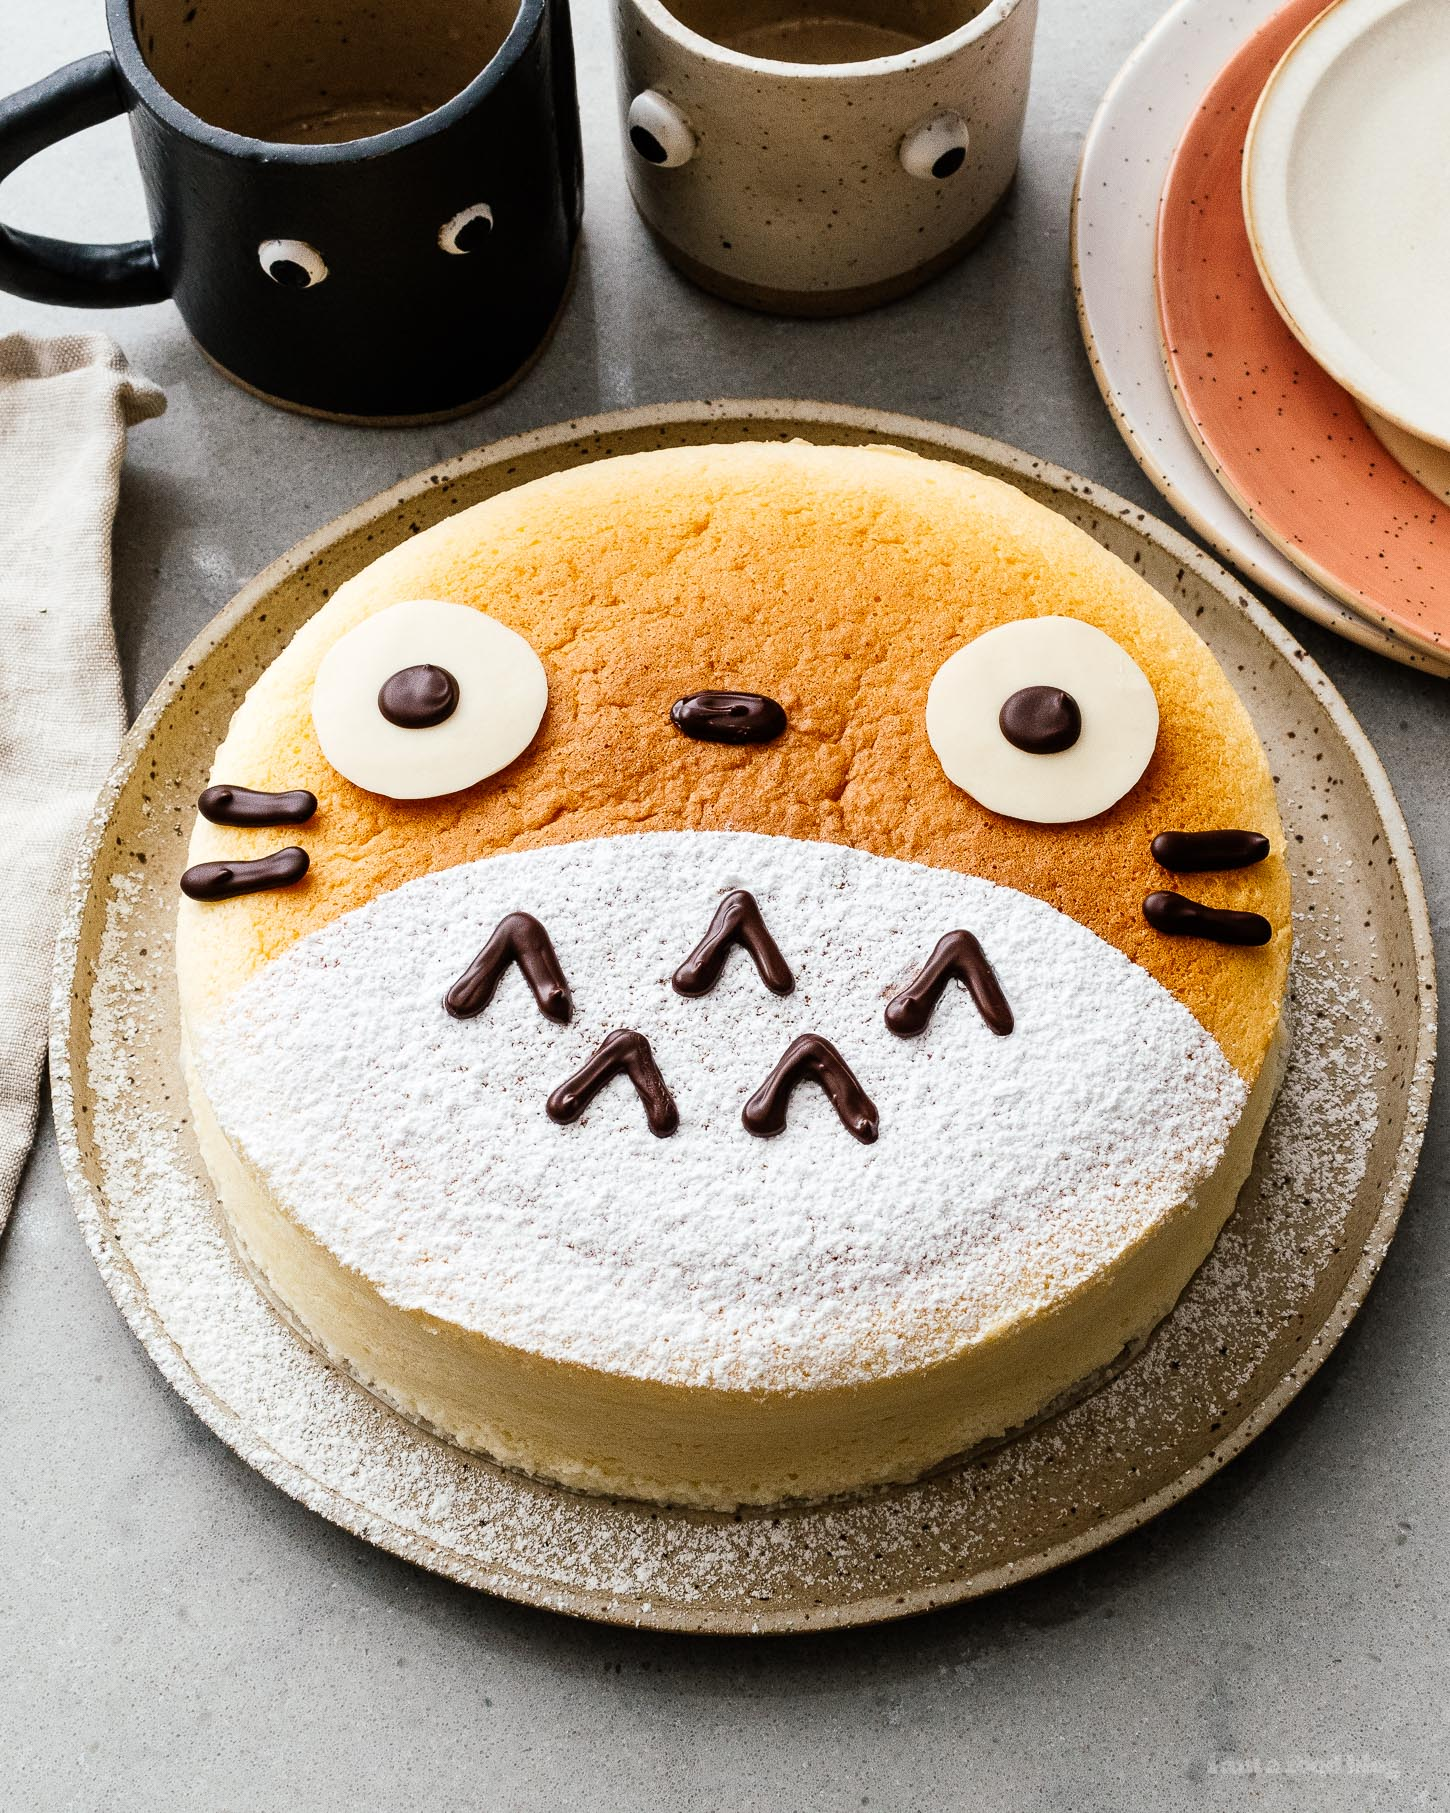 A super cute fluffy, jiggly Totoro cheesecake: pillowy soft, cotton-y, light-as-air cheesecake with just a hint of sweetness. #cheesecake #japanesecheesecake #fluffycheesecake #totorocake #totorocheesecake #totorofood #kawaiifood